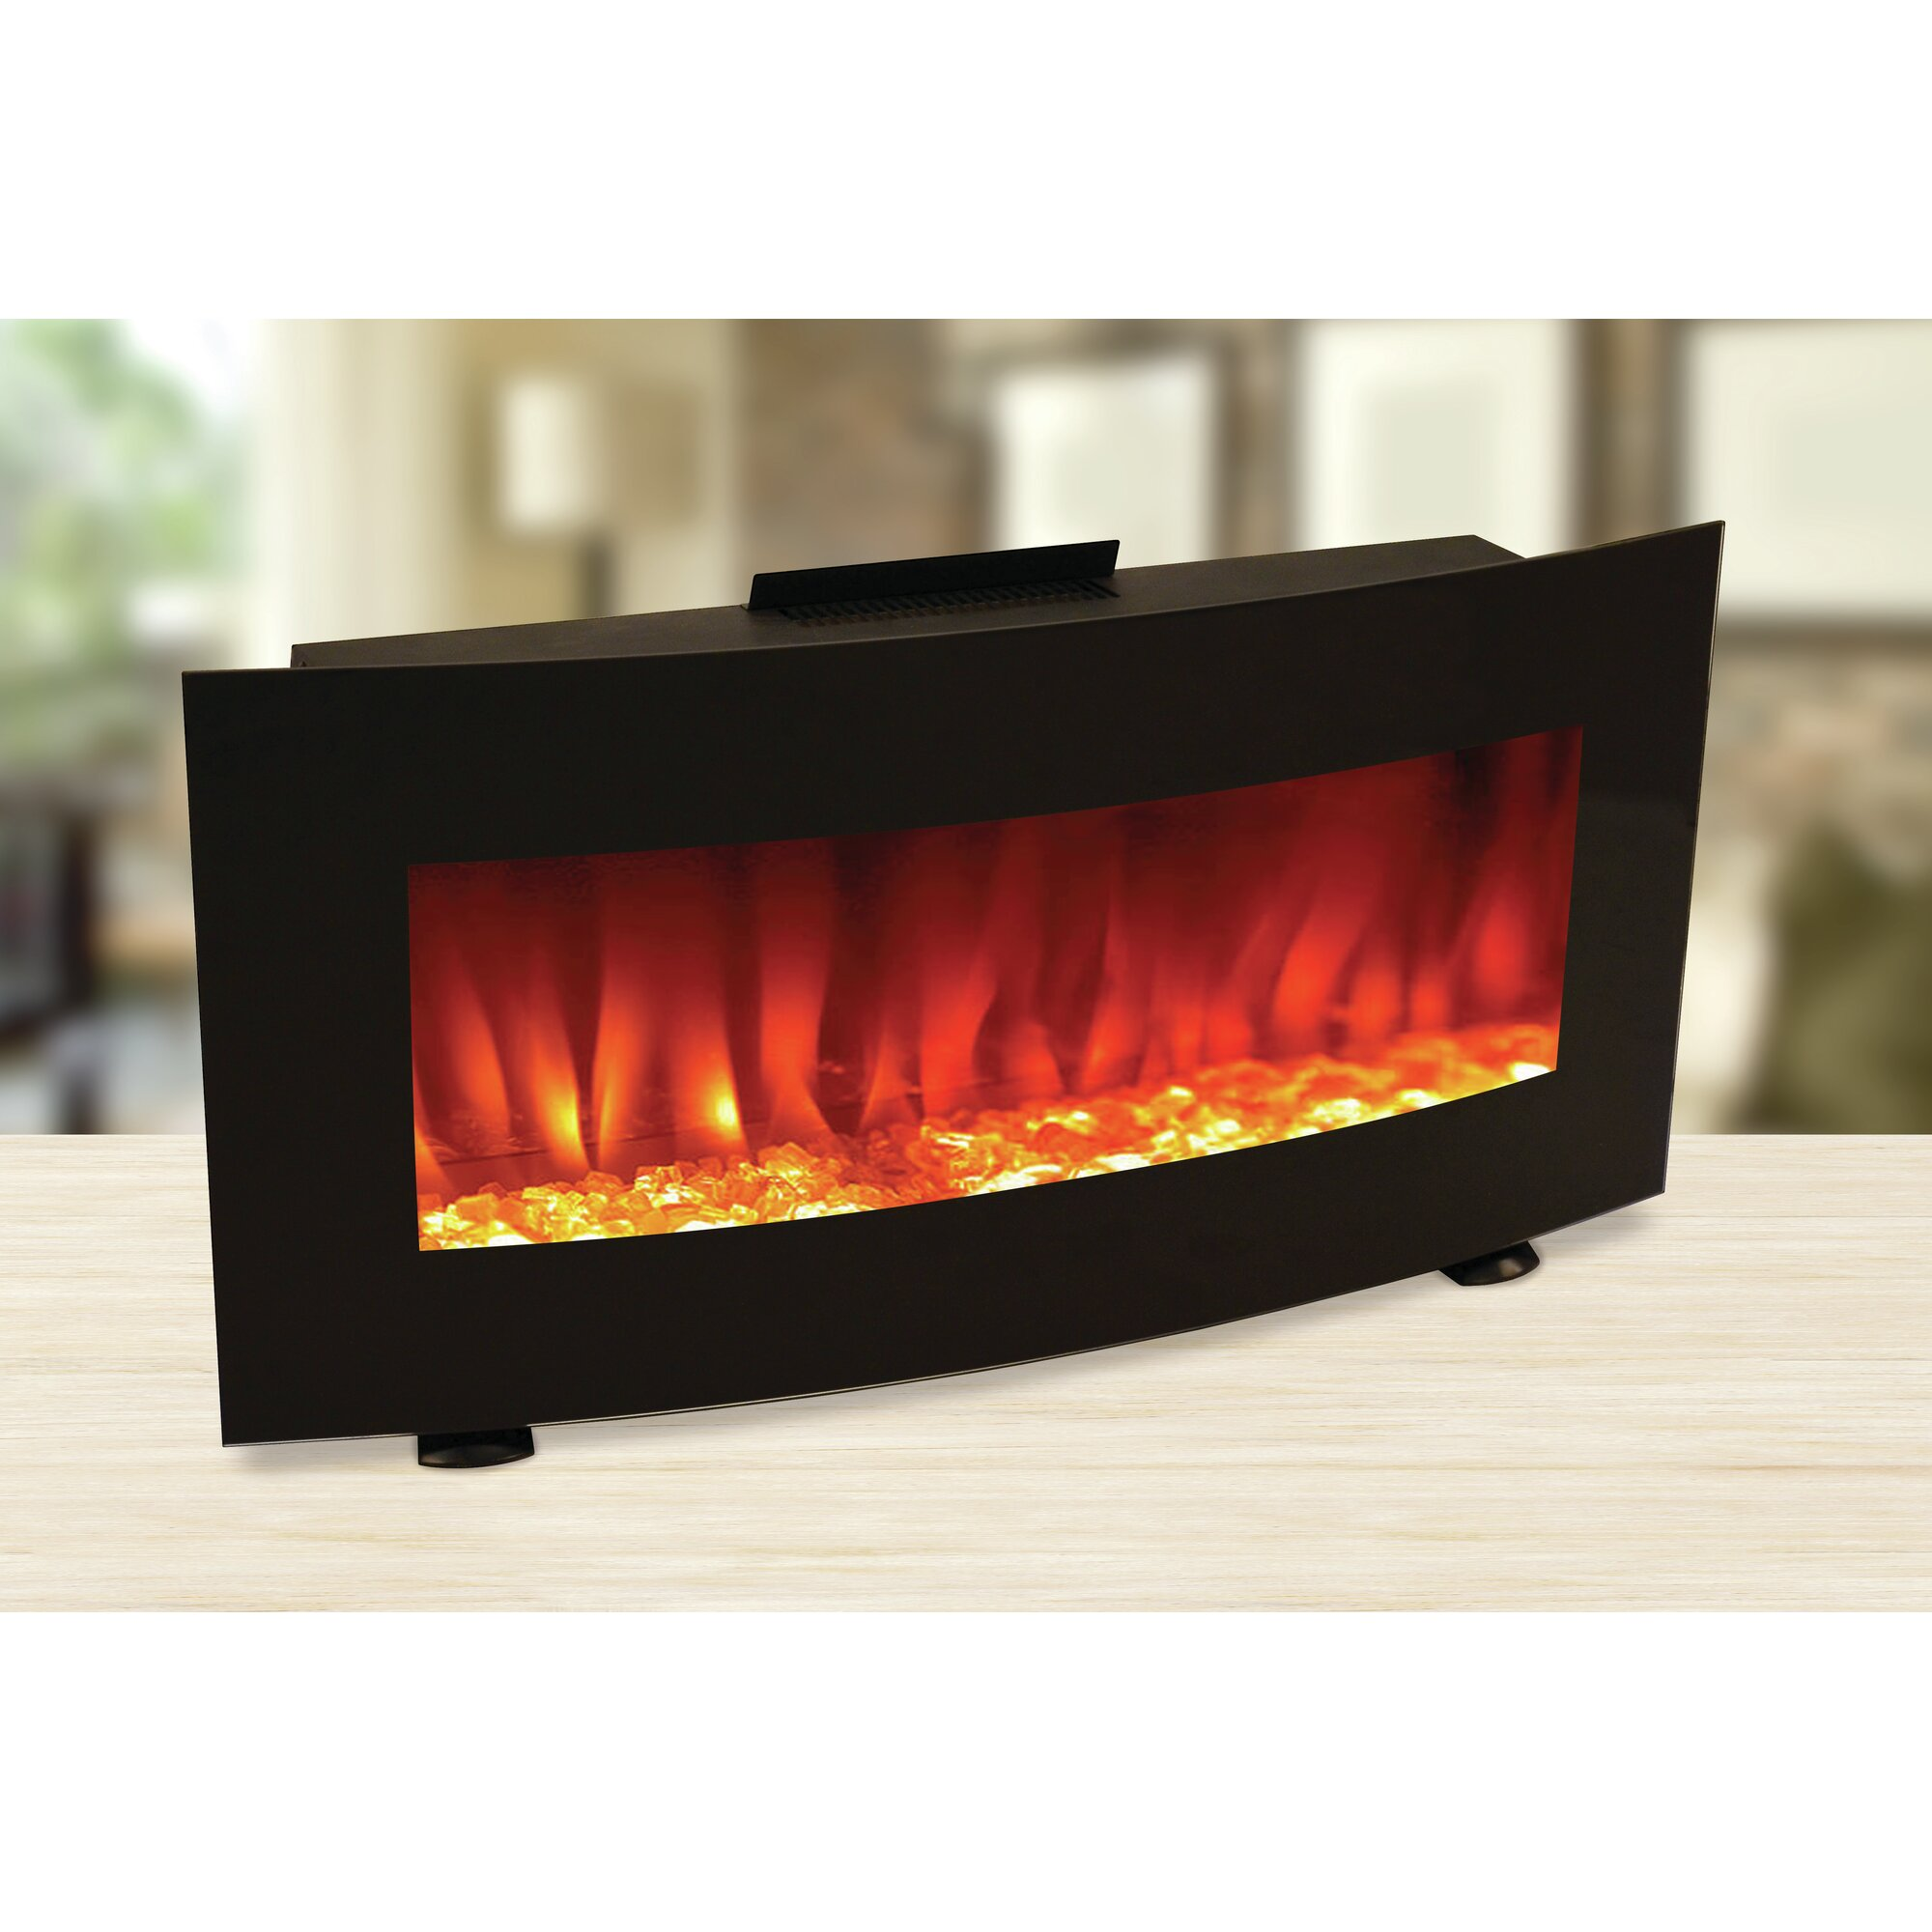 Prolectrix Electric Fireplace Review - Electric Fireplace Heat